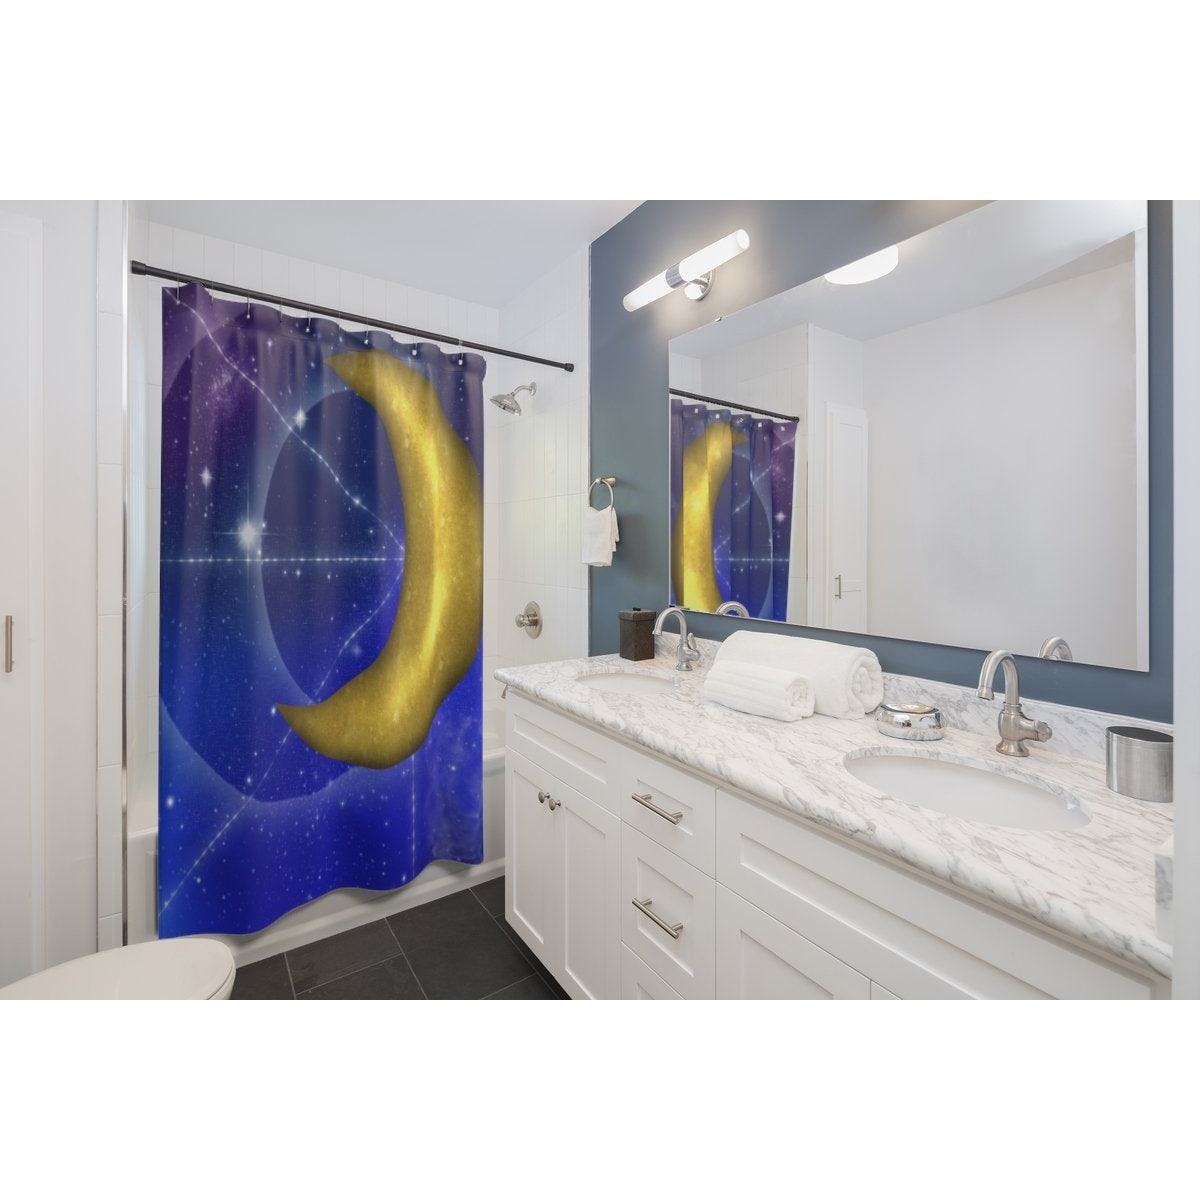 Moonpaths Shower Curtains